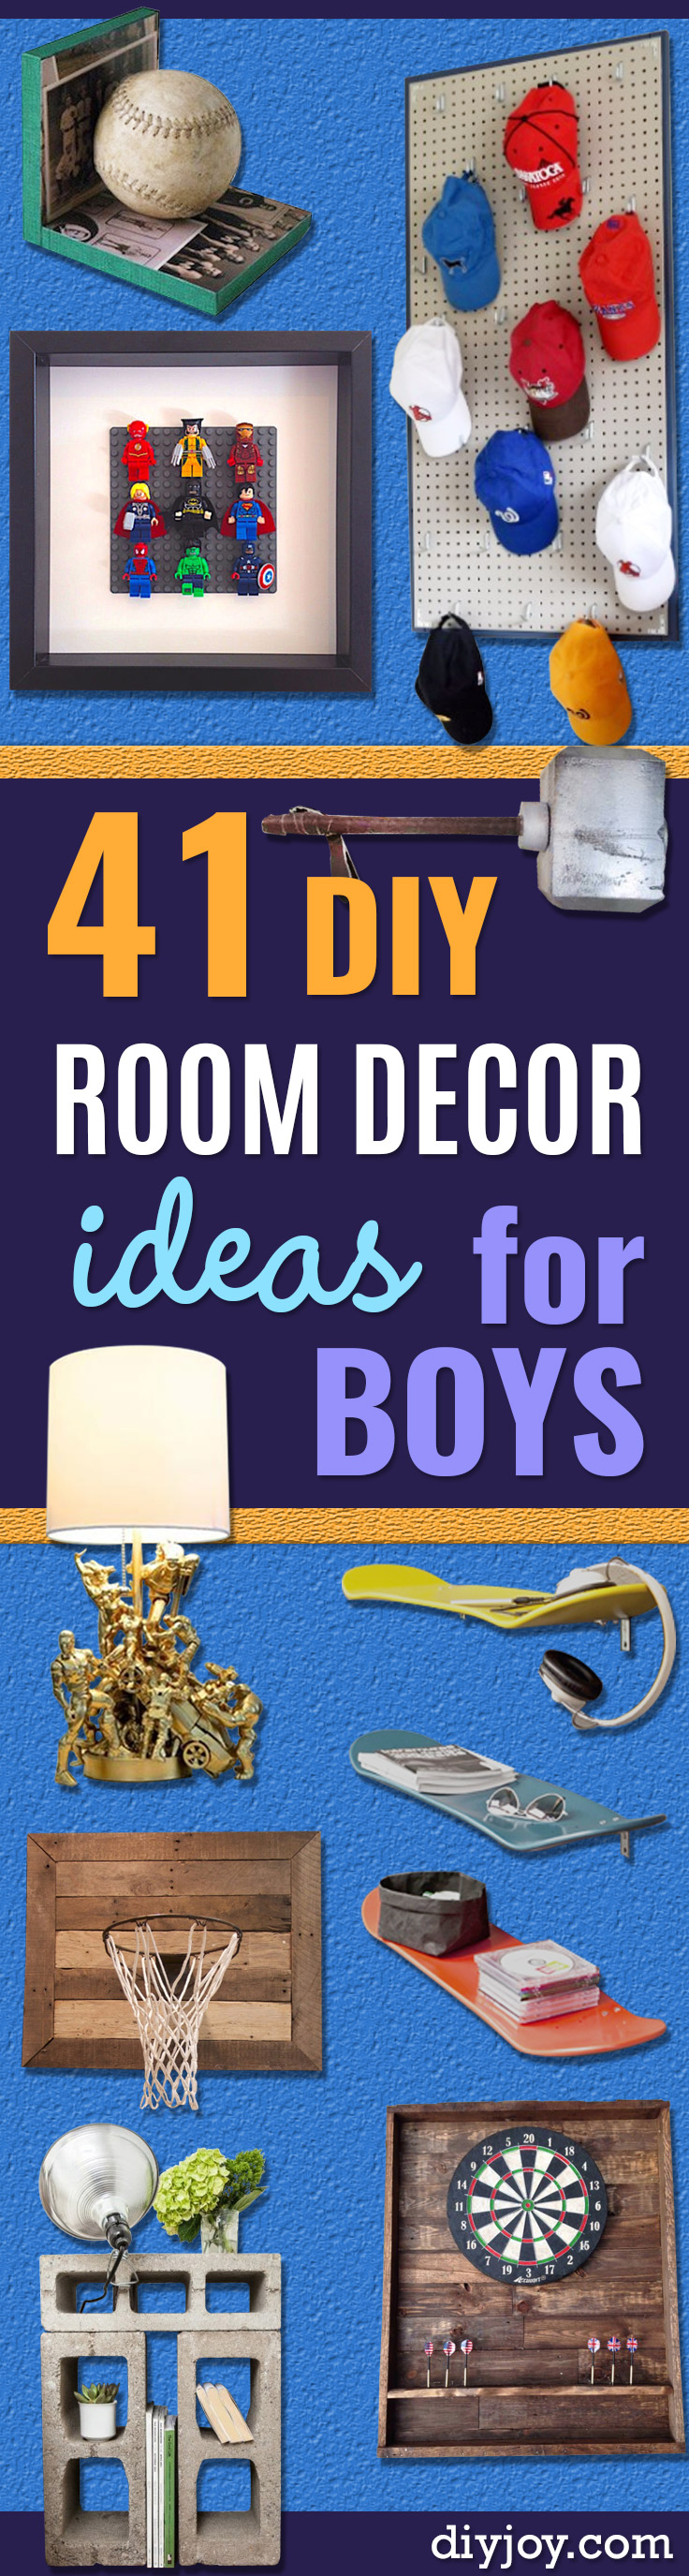 DIY Room Decor for Boys - Best Creative DIY Bedroom Ideas for Boy Rooms - Wall Art, Lamps, Rugs, Lamps, Beds, Bedding and Furniture You Can Make for Teens, Tweens and Teenagers